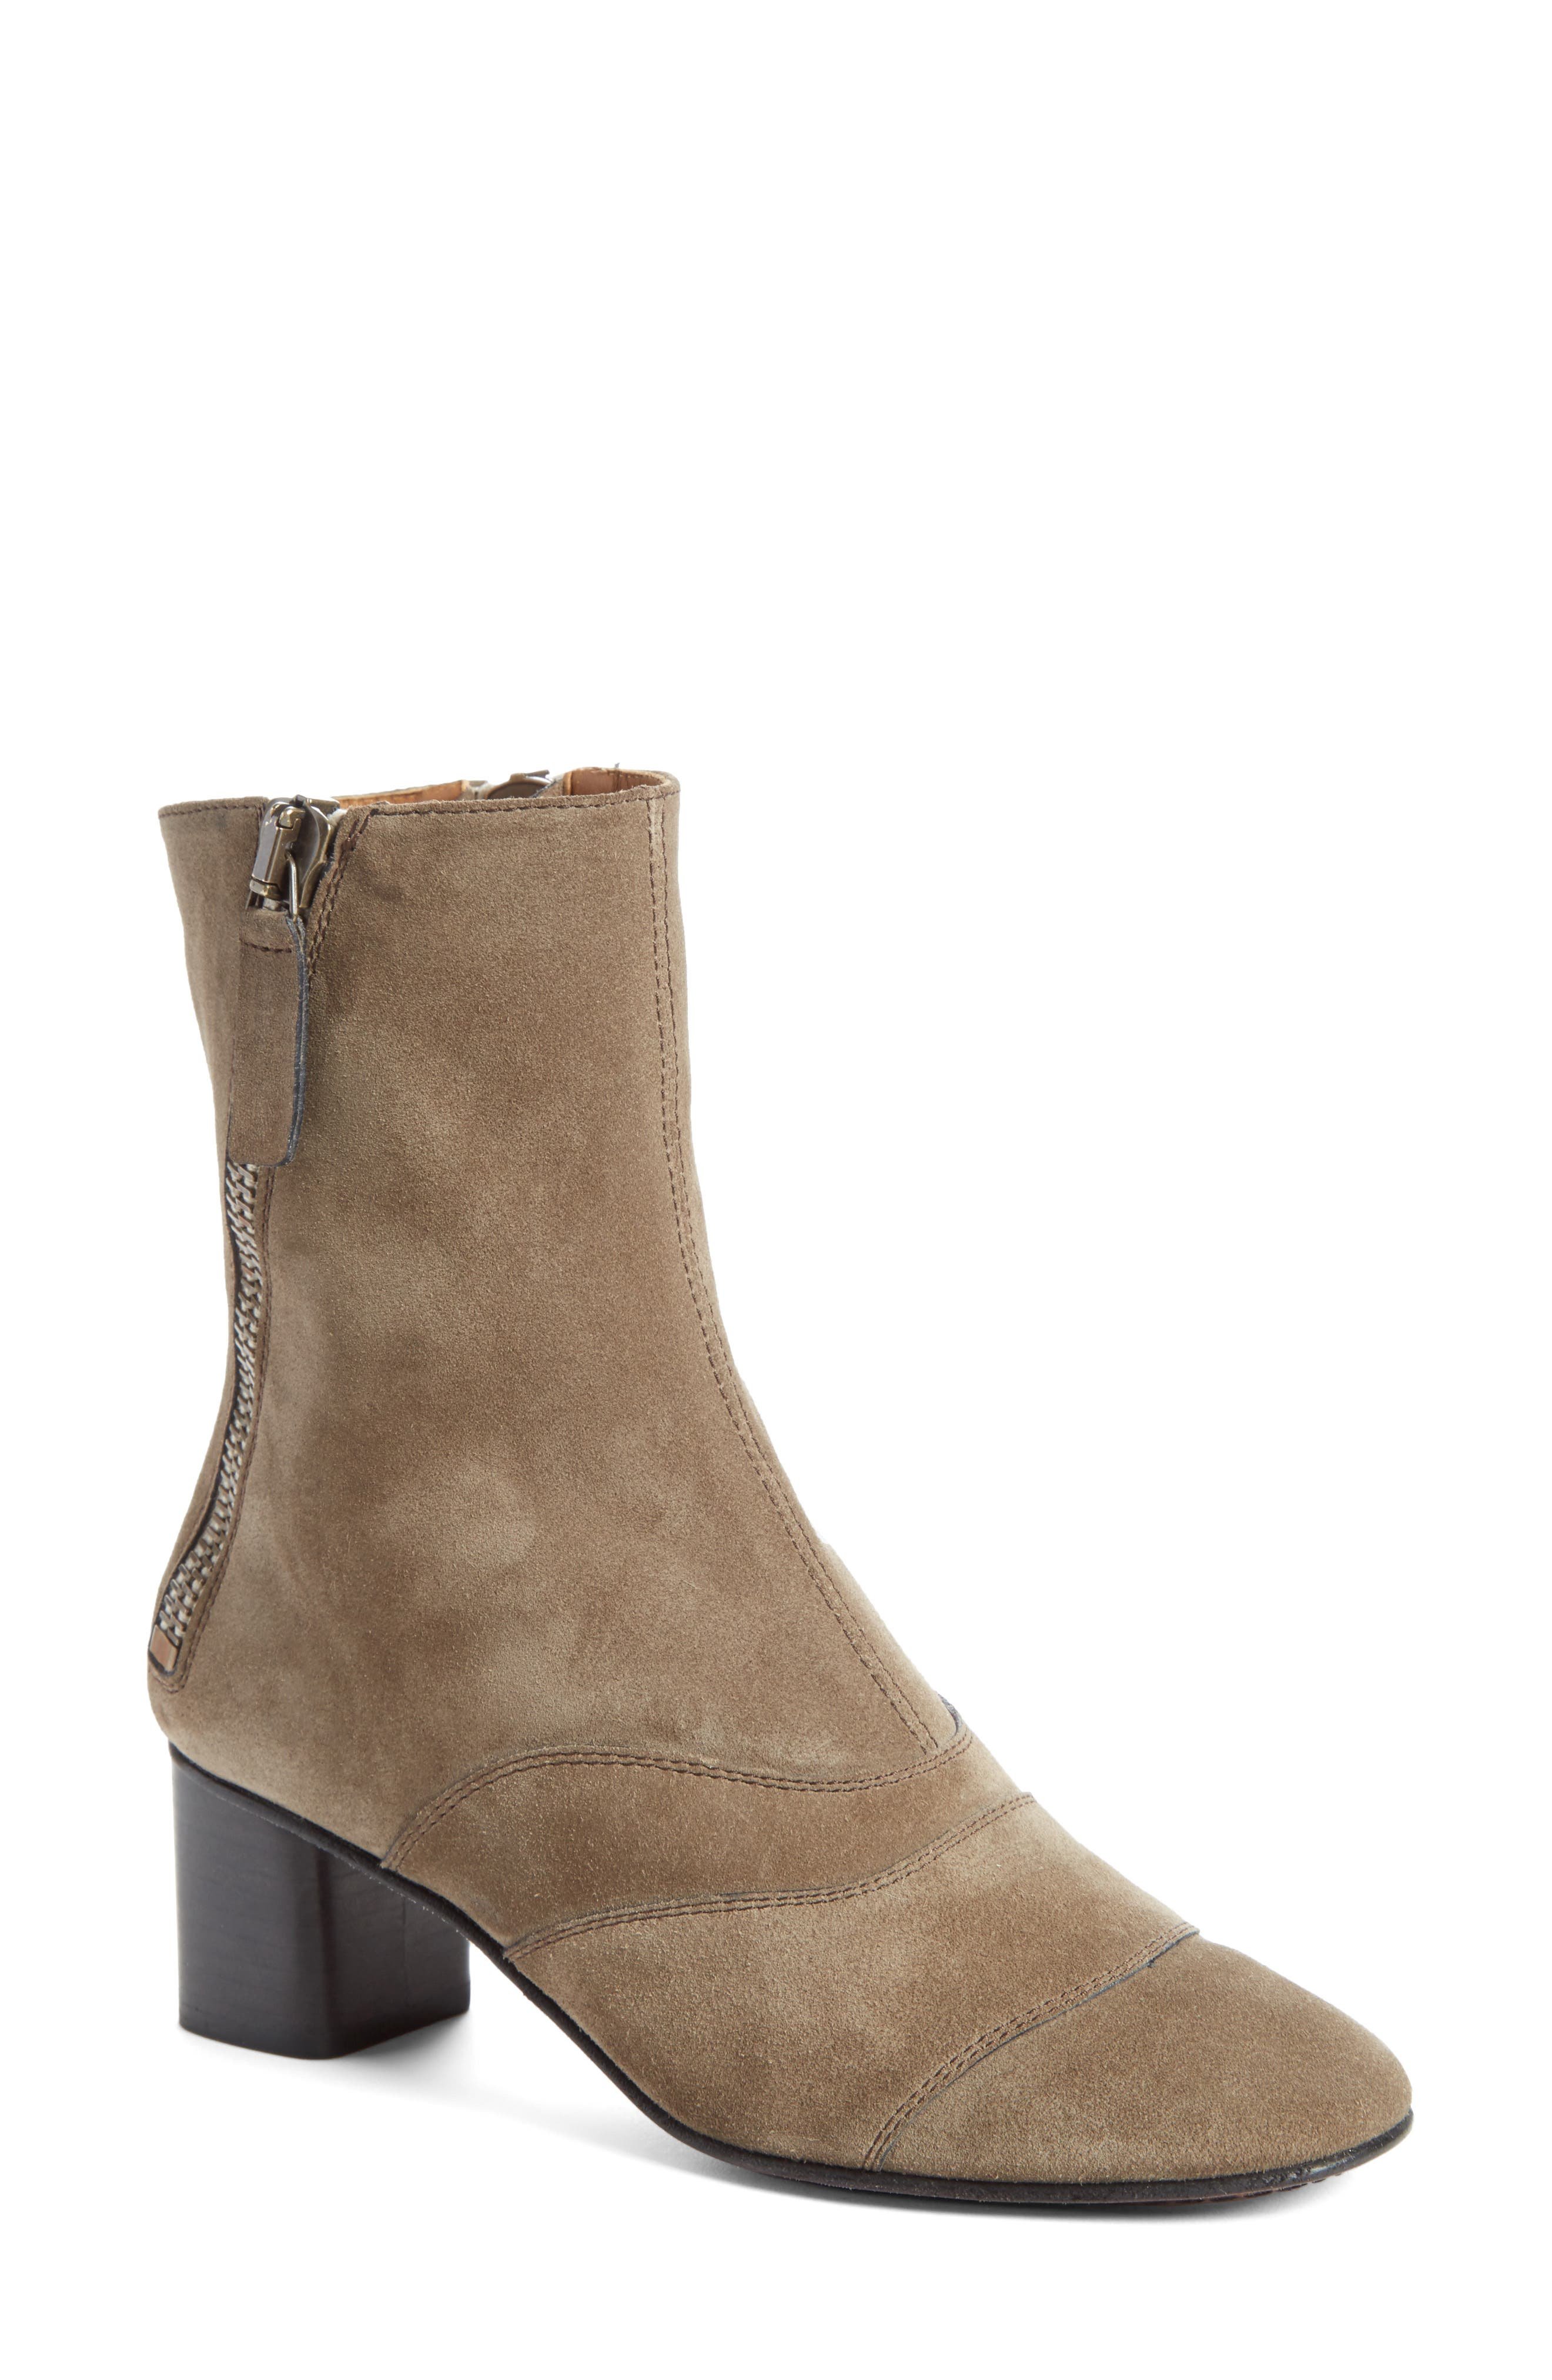 Lexie Block Heel Boot,                             Main thumbnail 1, color,                             021